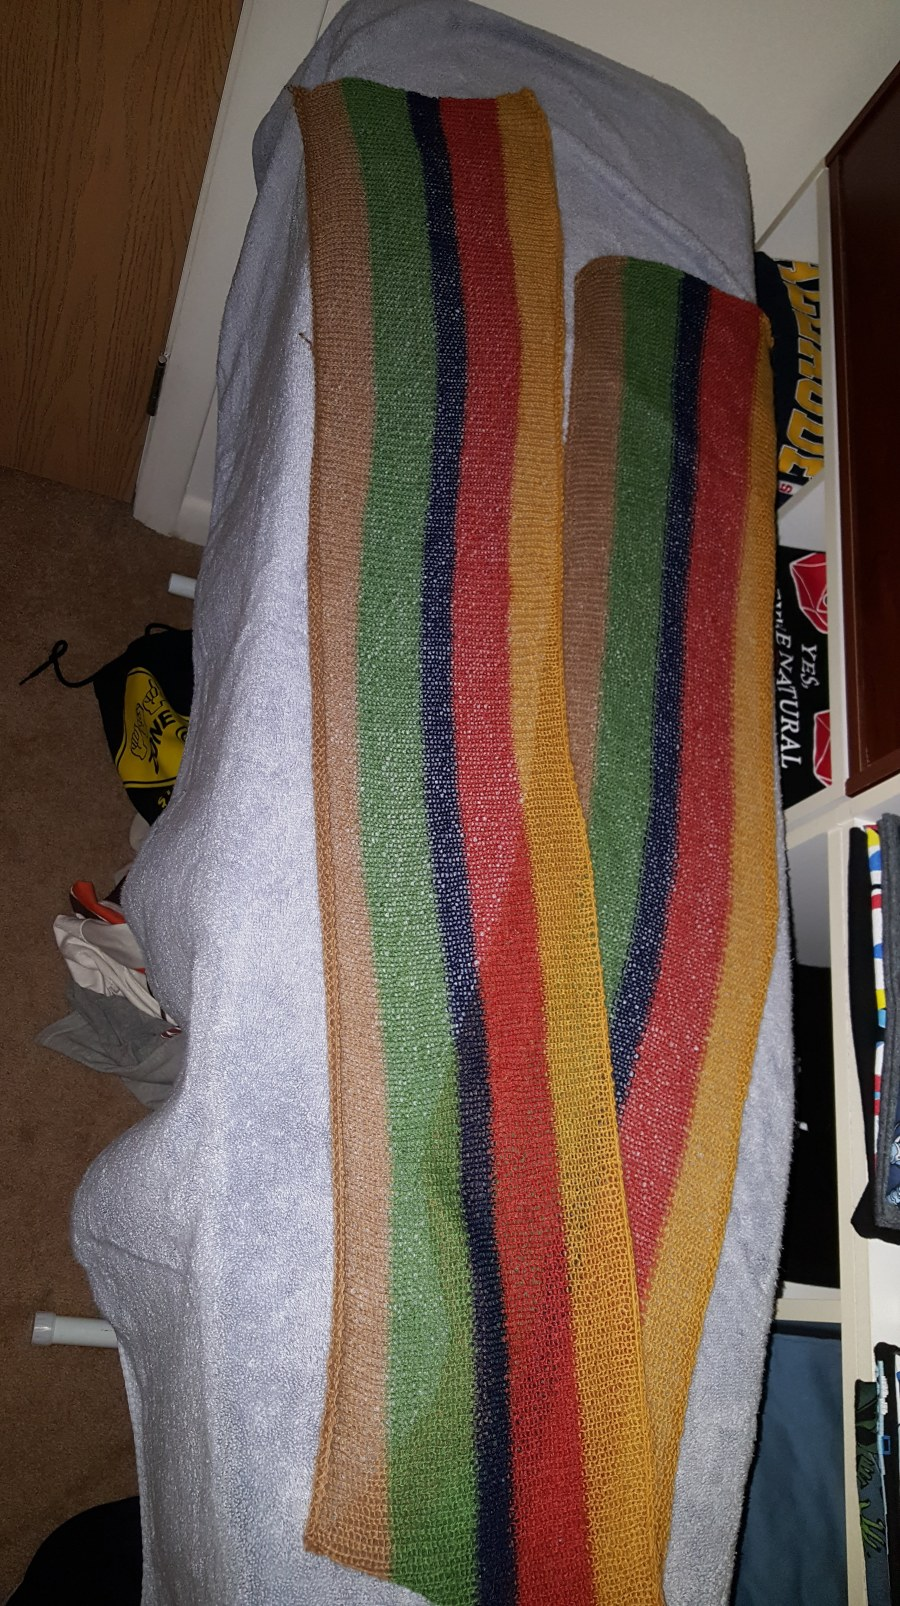 A scarf with tan, green, blue, red, and gold stripes that run its length on a light blue ironing board with other stuff in the background.